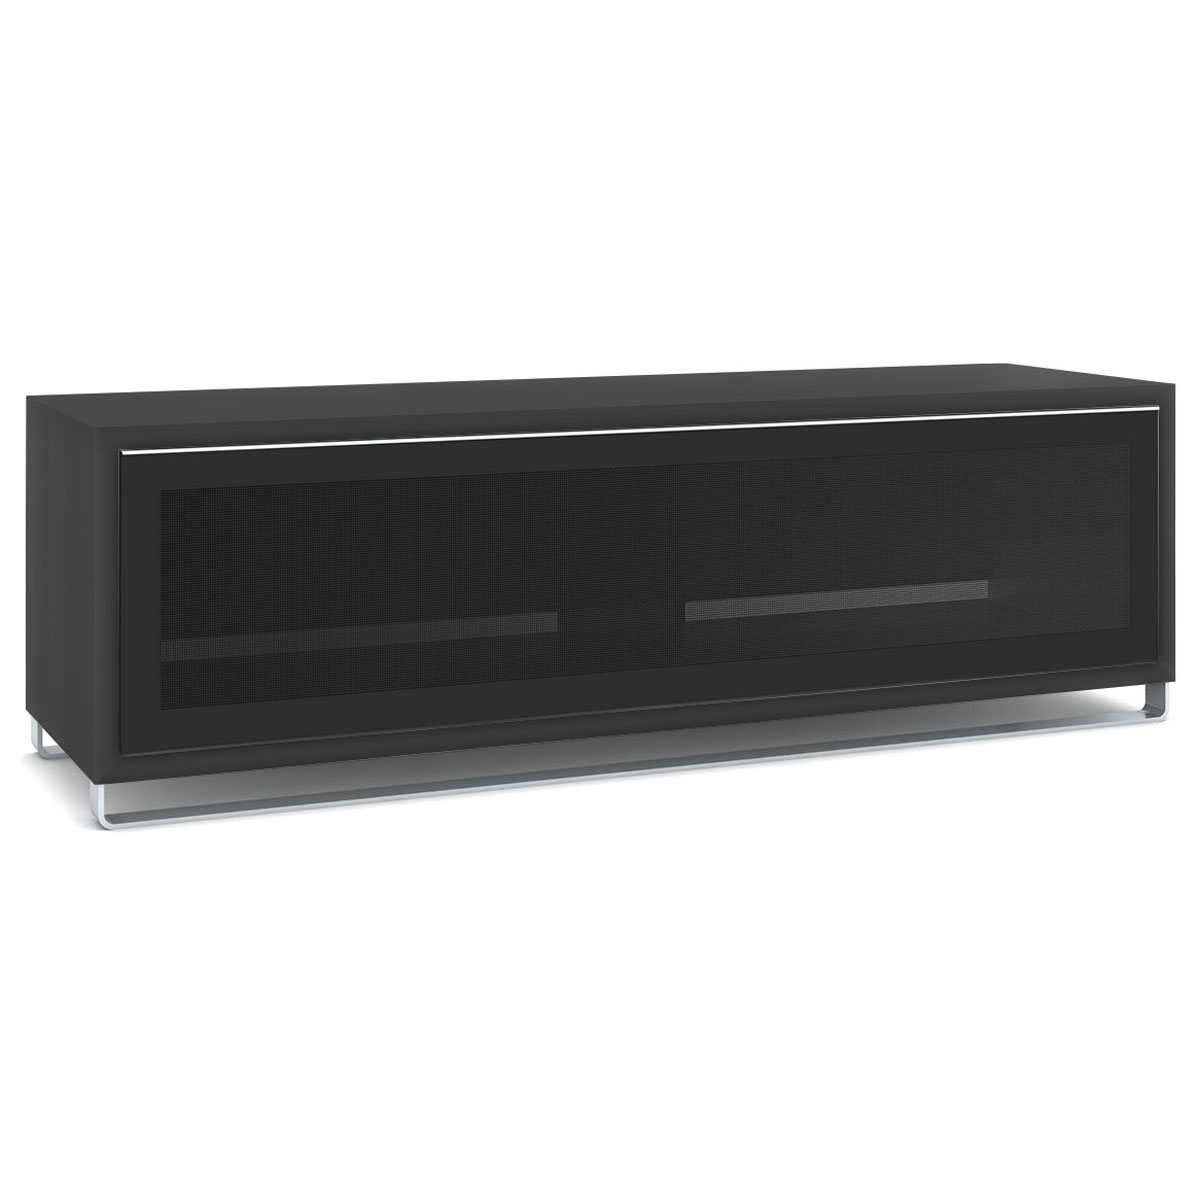 de conti ampio noir meuble tv de conti sur ldlc. Black Bedroom Furniture Sets. Home Design Ideas